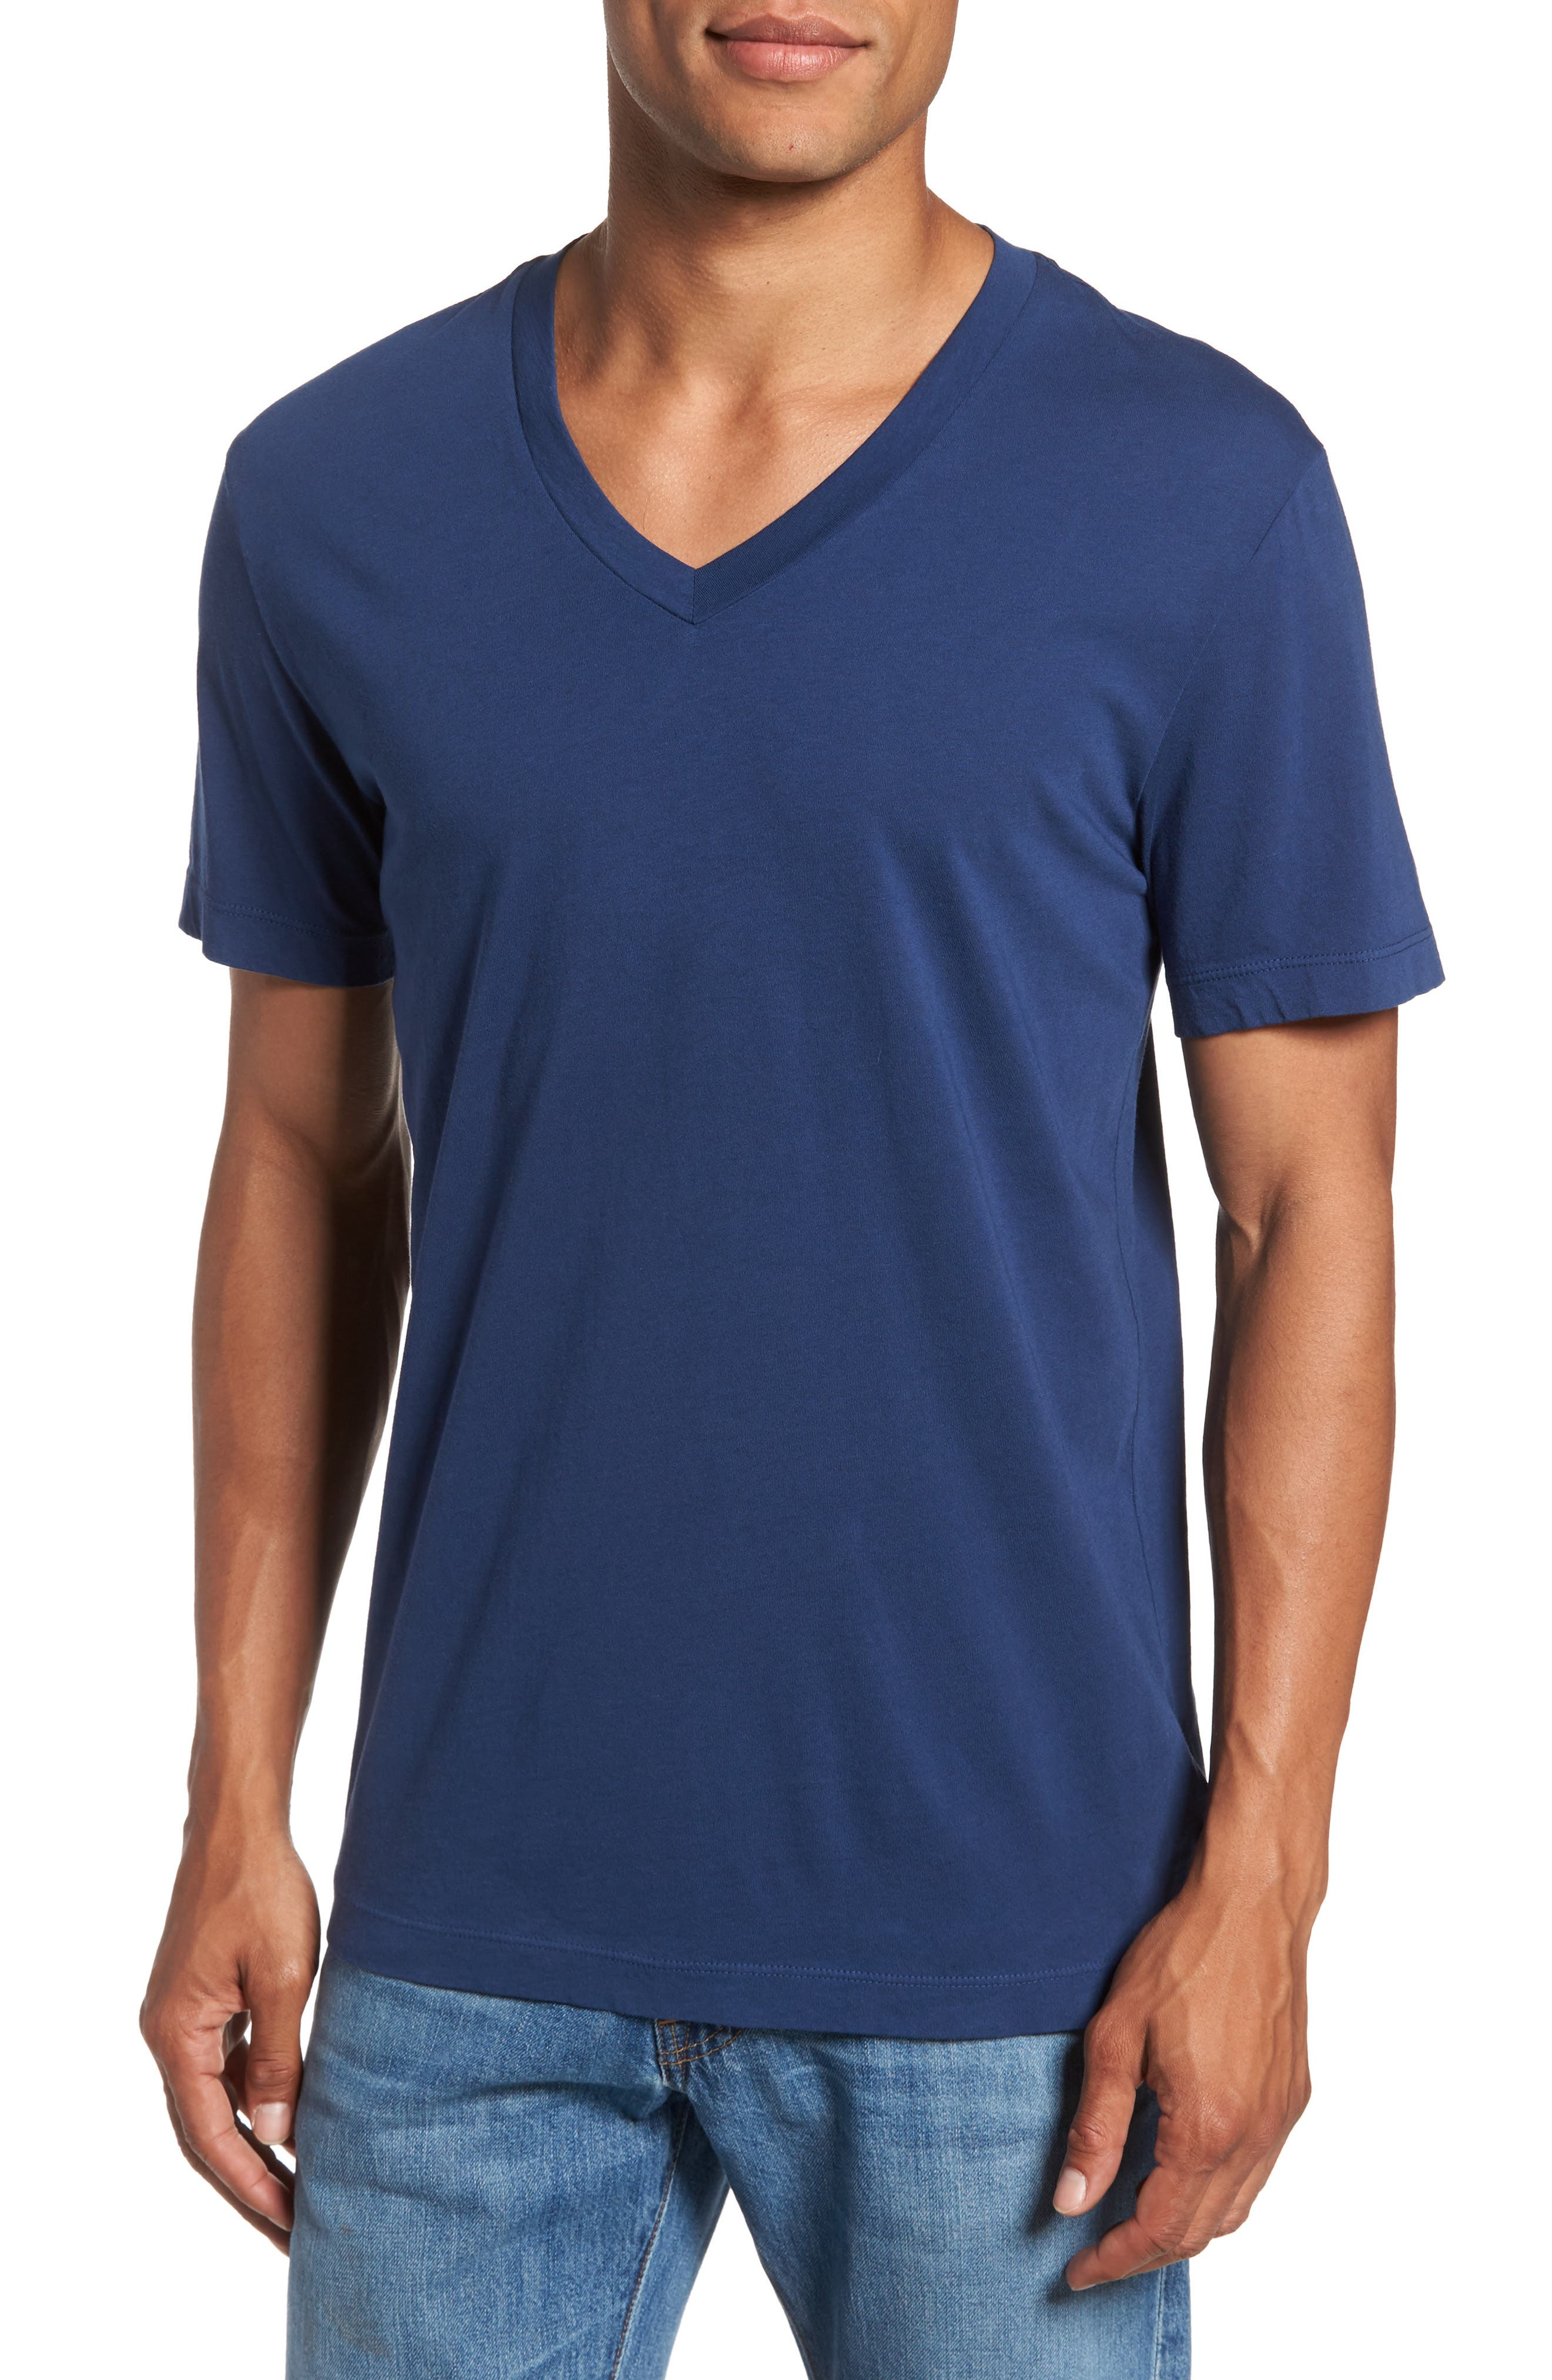 Alternate Image 1 Selected - James Perse Short Sleeve V-Neck T-Shirt